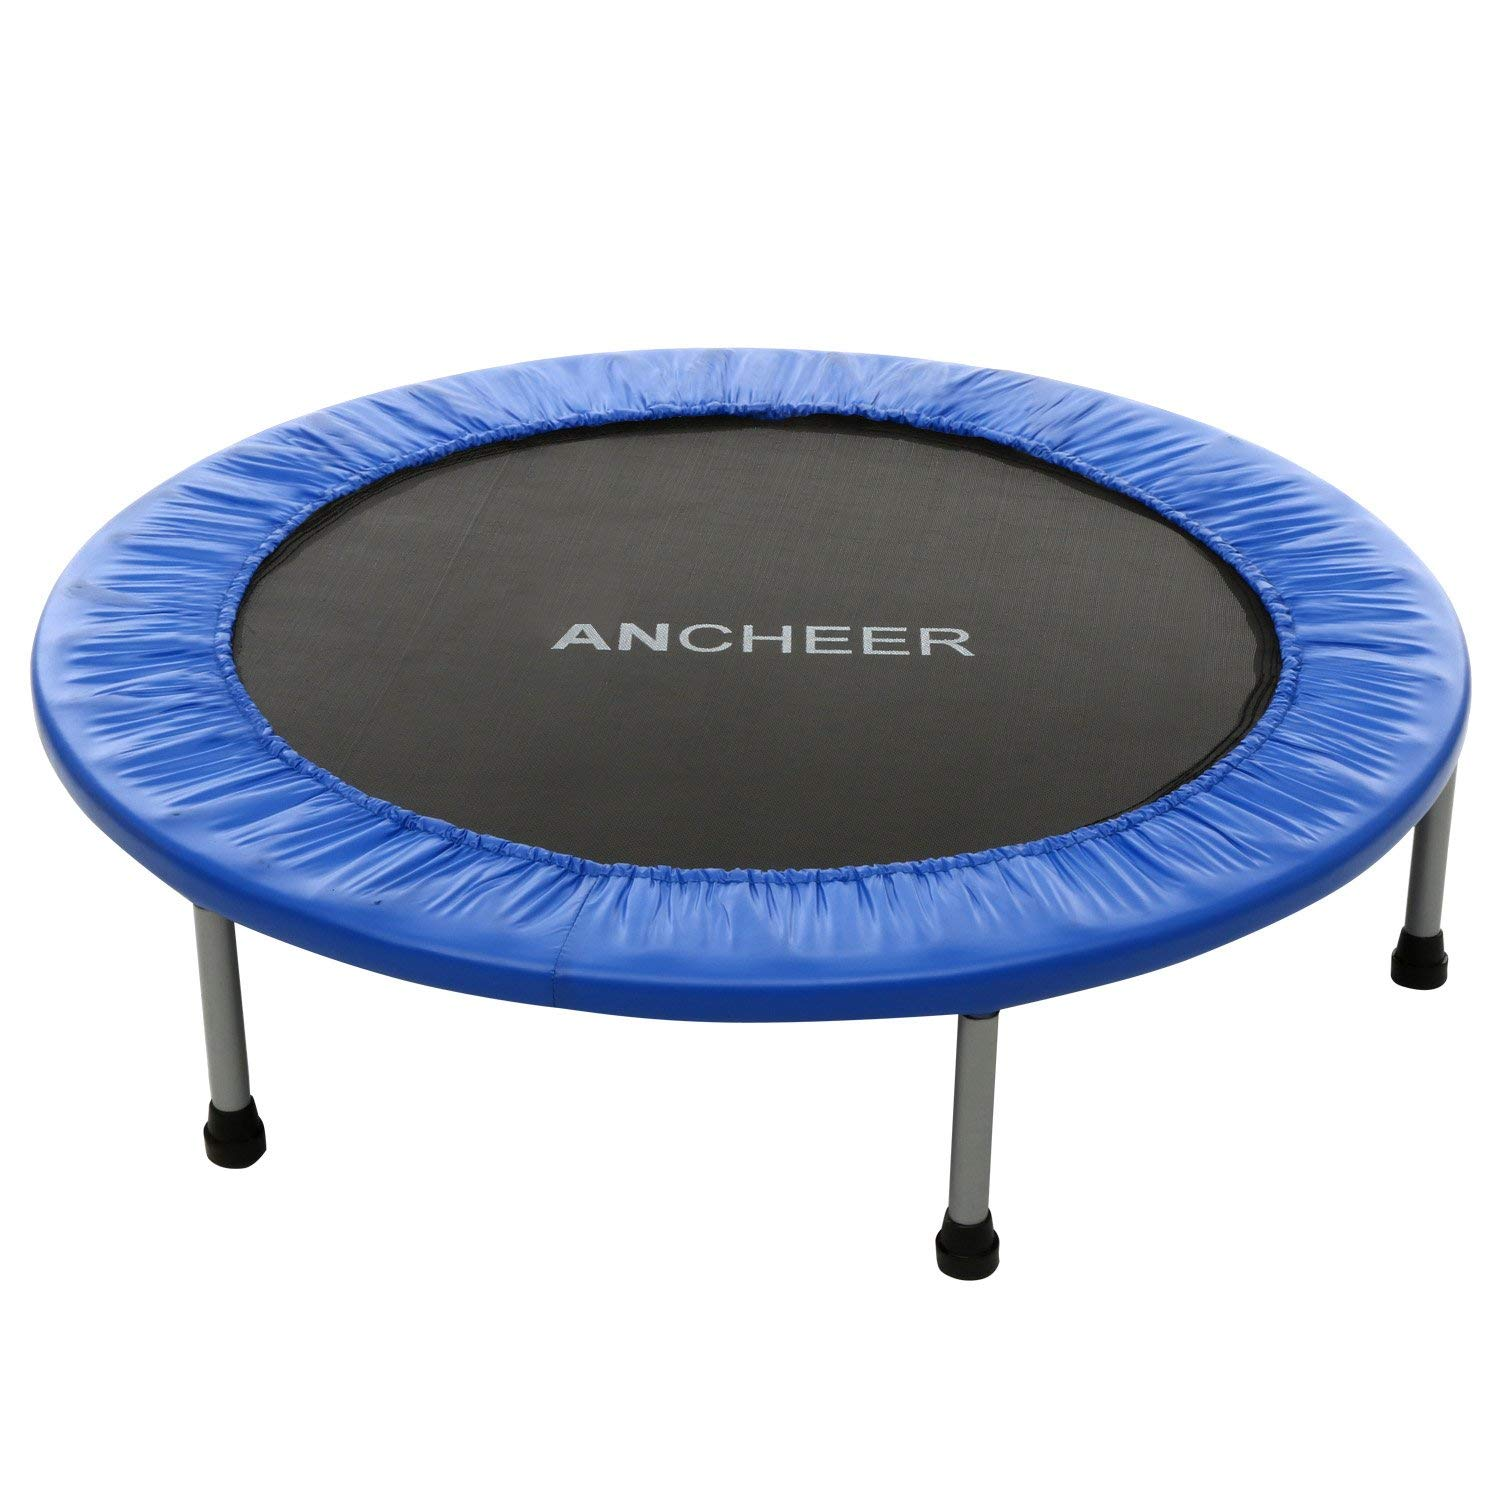 ANCHEER Max Load 220lbs Rebounder Trampoline with Safety Pad for Indoor Garden Workout Cardio Training (2 Sizes: 38 inch/40 inch, Two Modes: Folding/Not Folding) (Renewed)